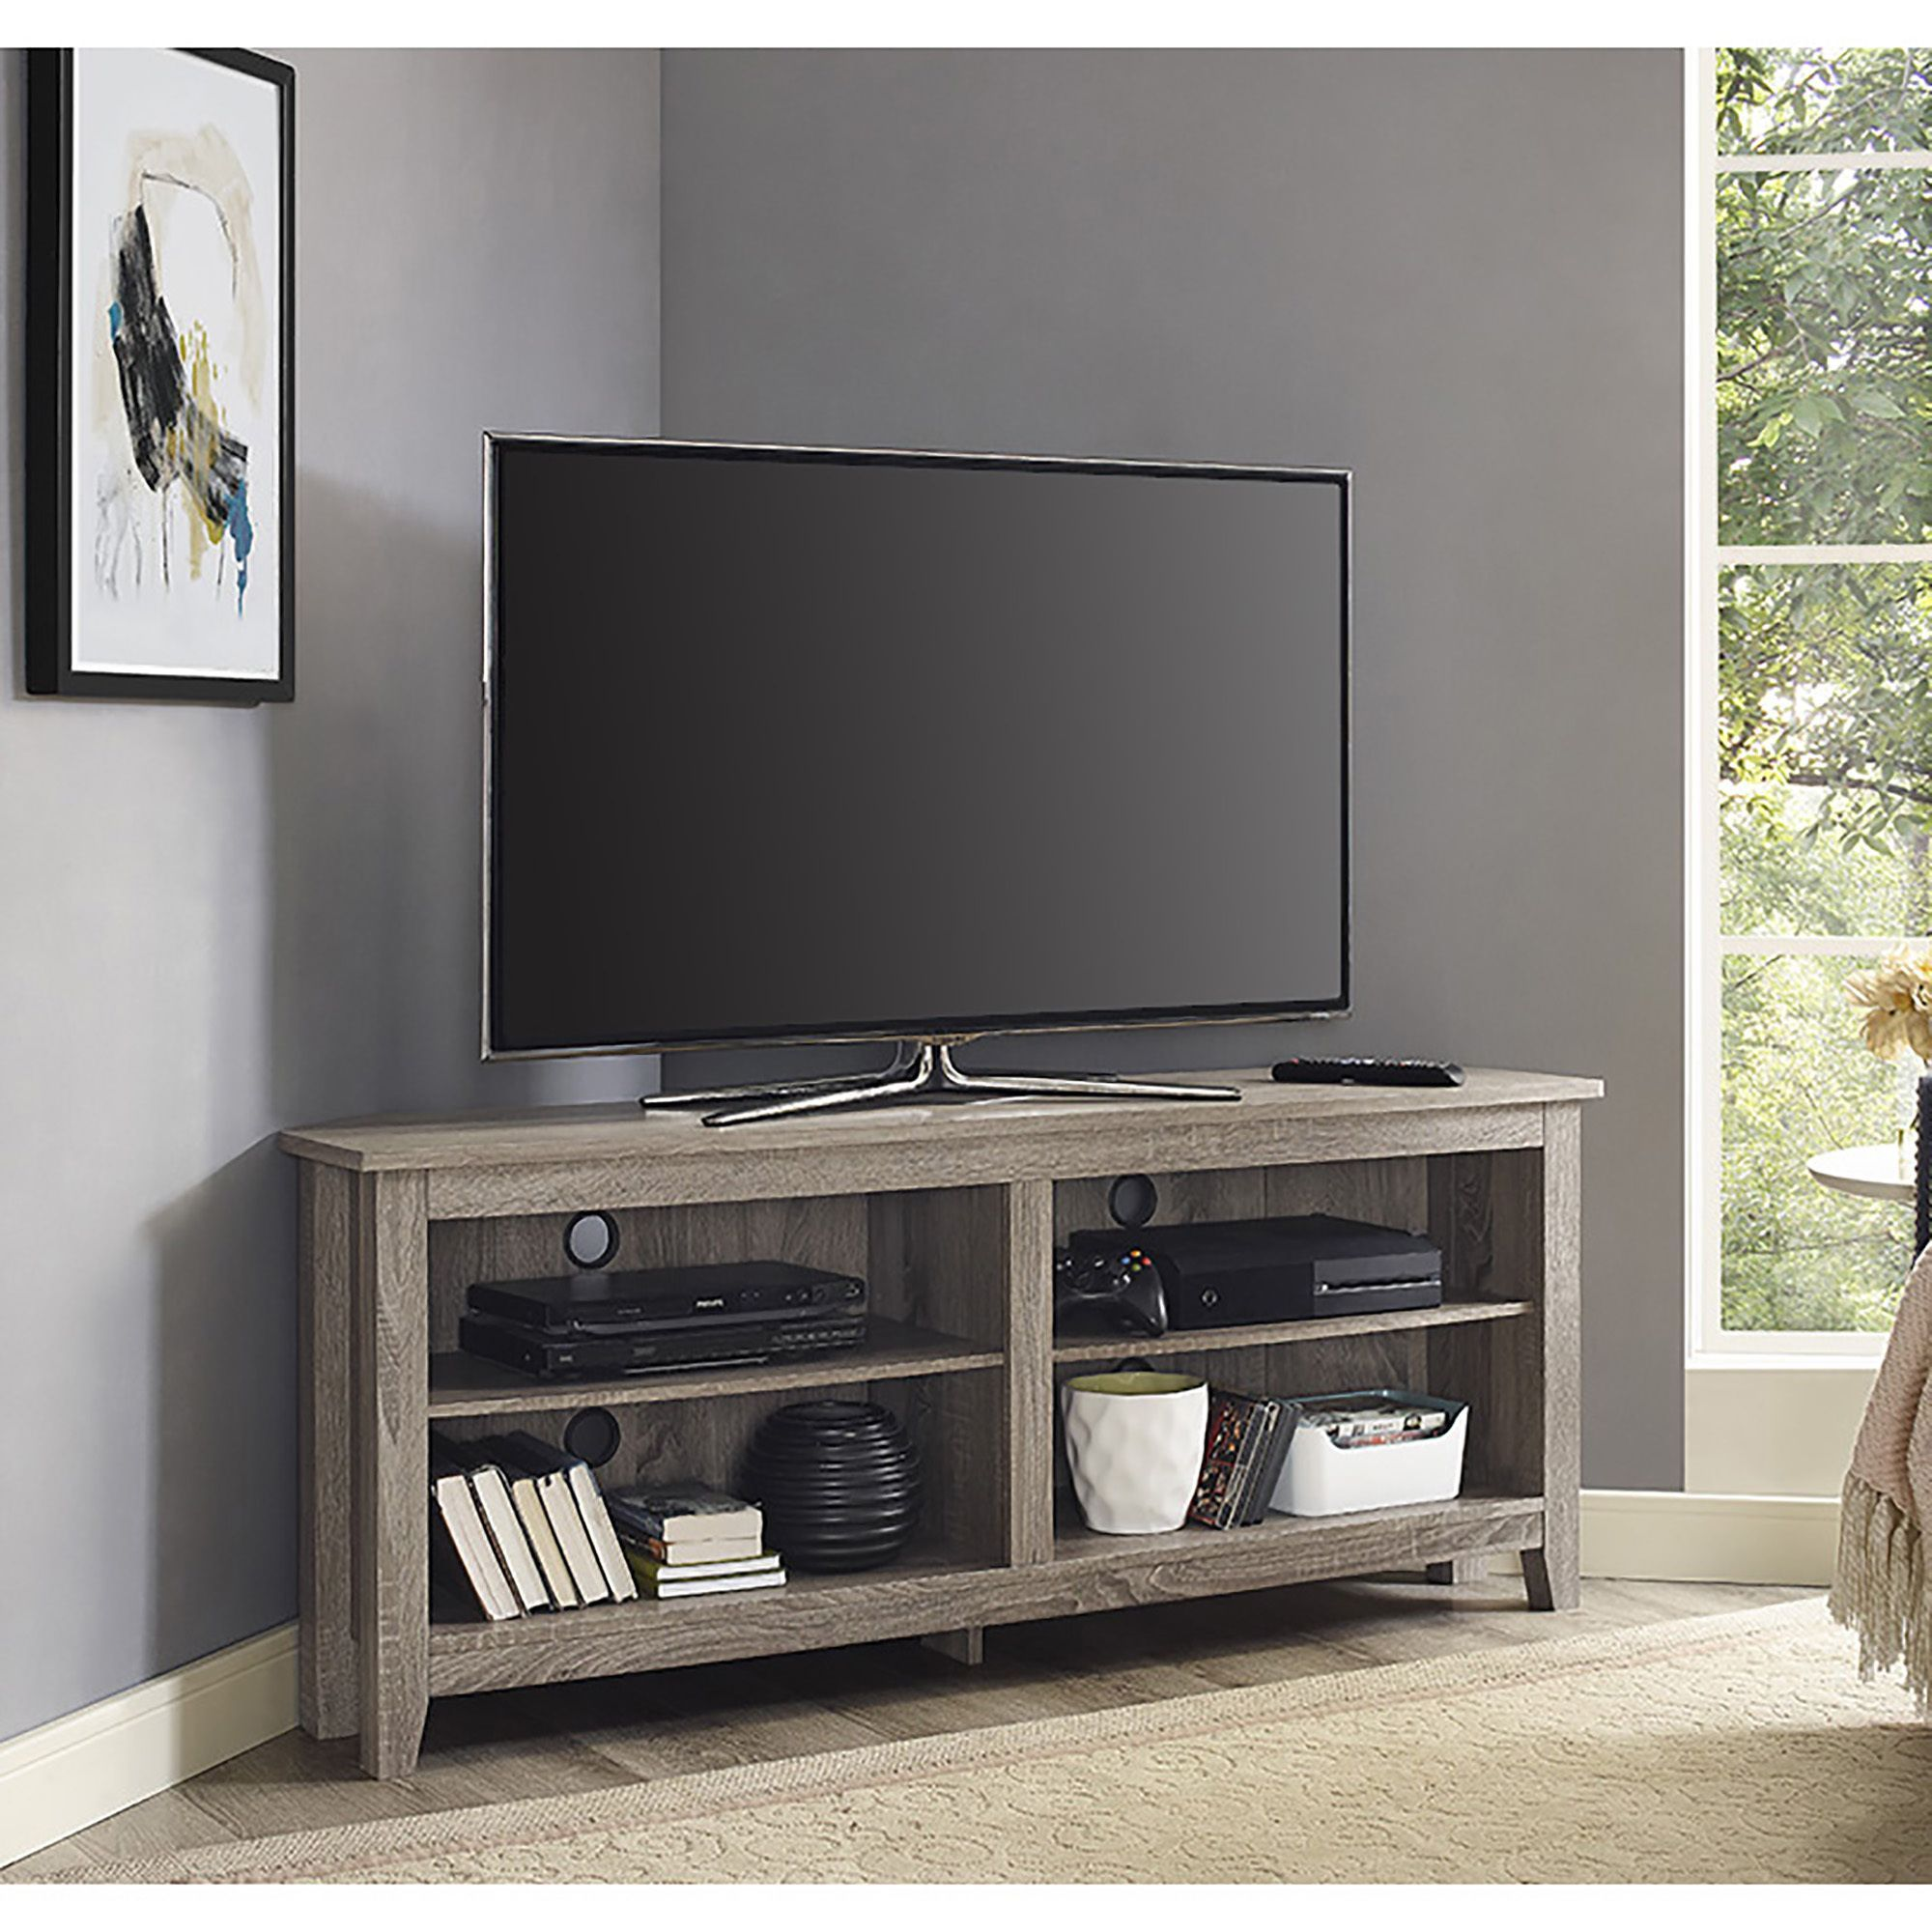 when and how to place your tv in the corner of a room | cozy